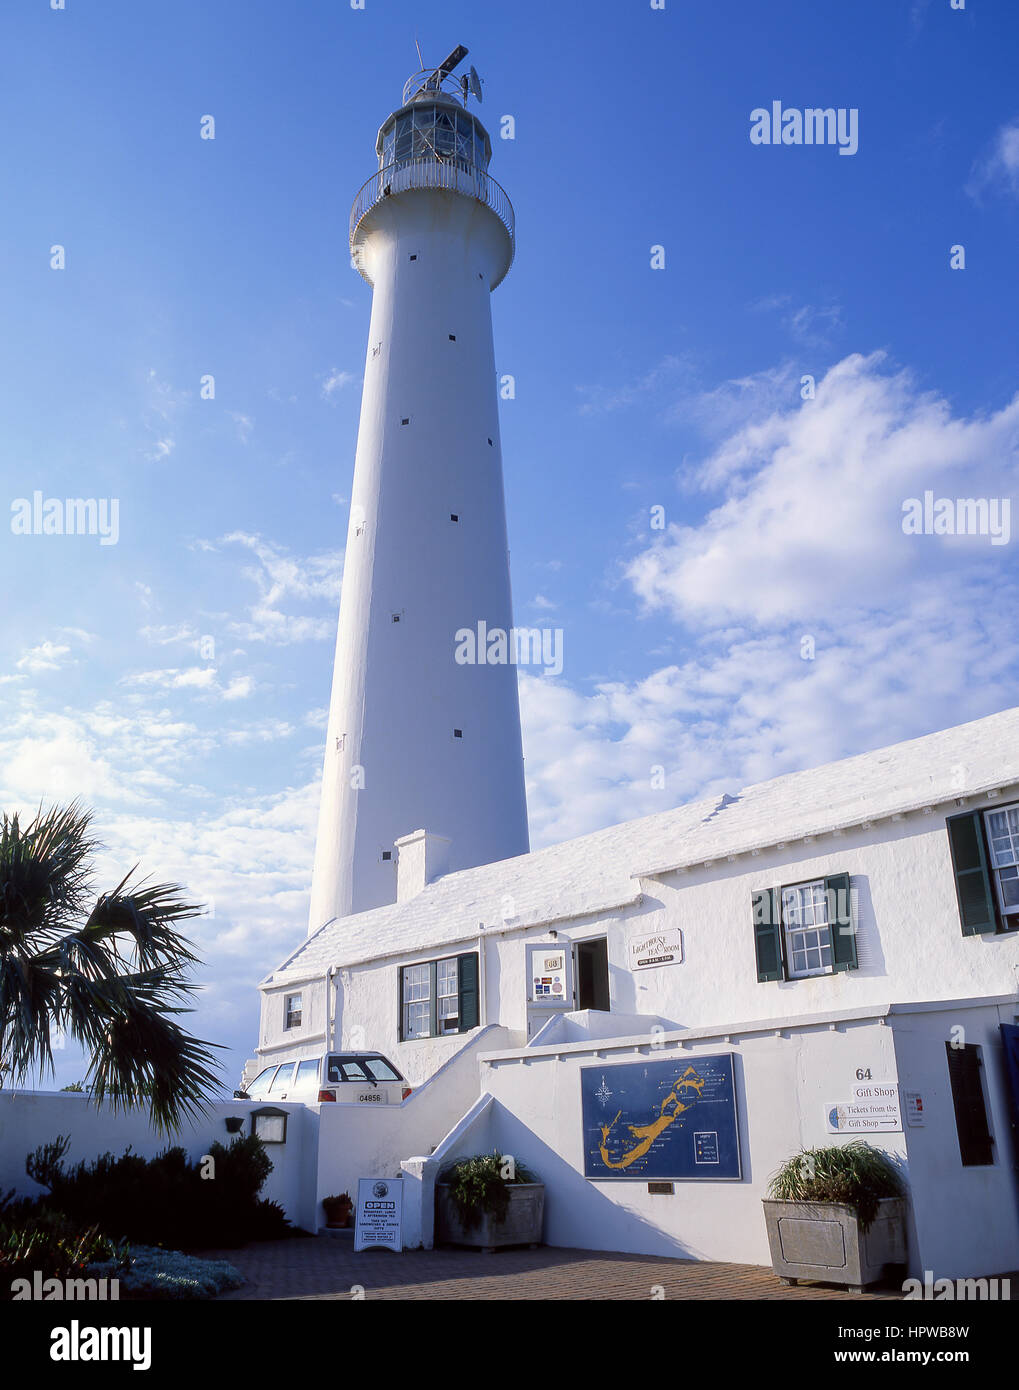 Gibb's Hill Lighthouse and tearooms, Southampton Parish, Bermuda - Stock Image